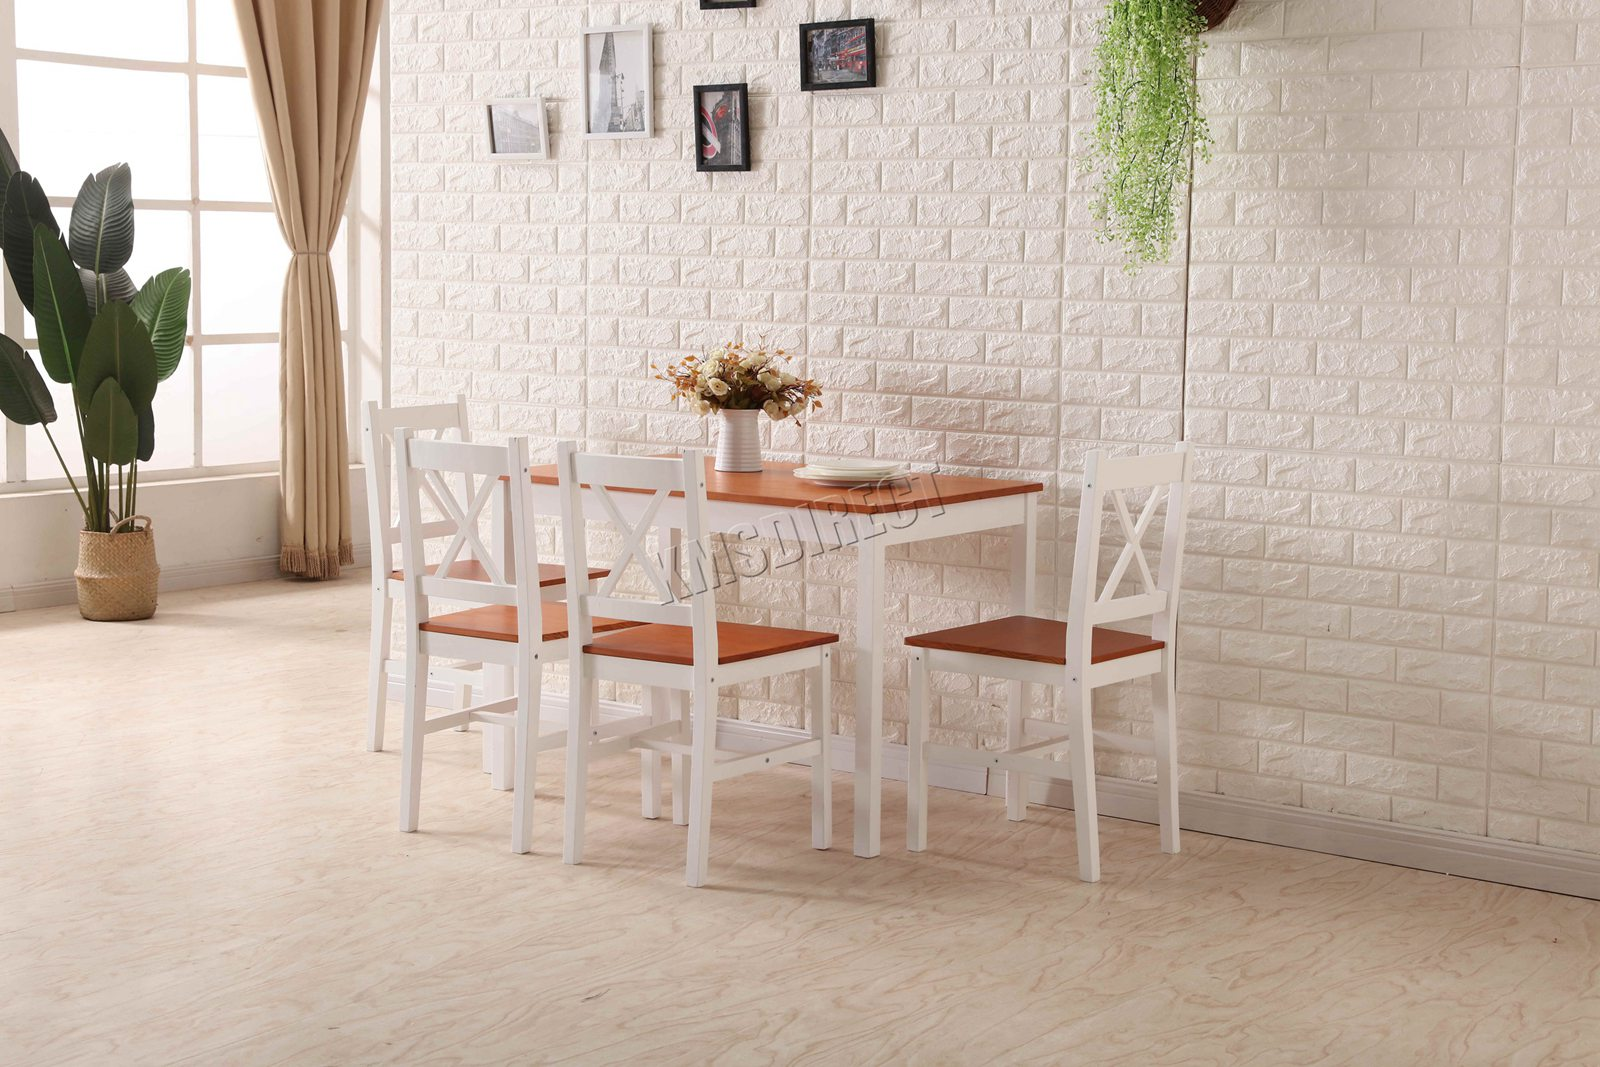 Kitchen Chairs Wood Details About Westwood Quality Solid Wooden Dining Table And 4 Chairs Set Kitchen Home Ds03